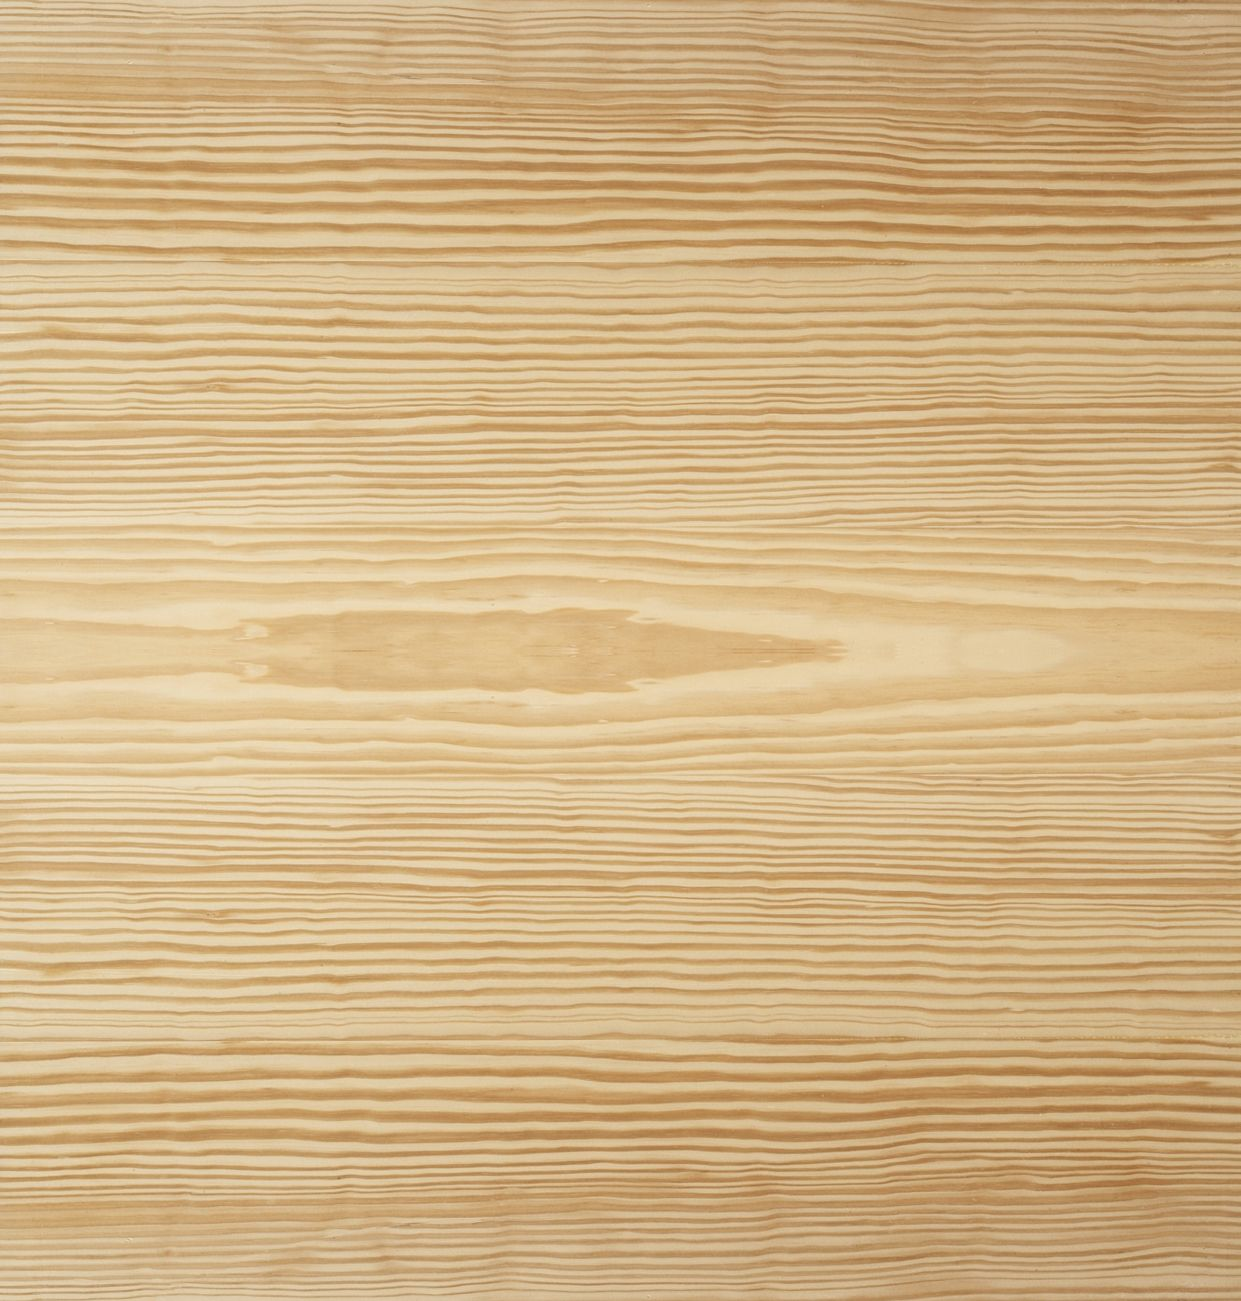 White wood texture related keywords amp suggestions white wood texture - Pine Wood Texture